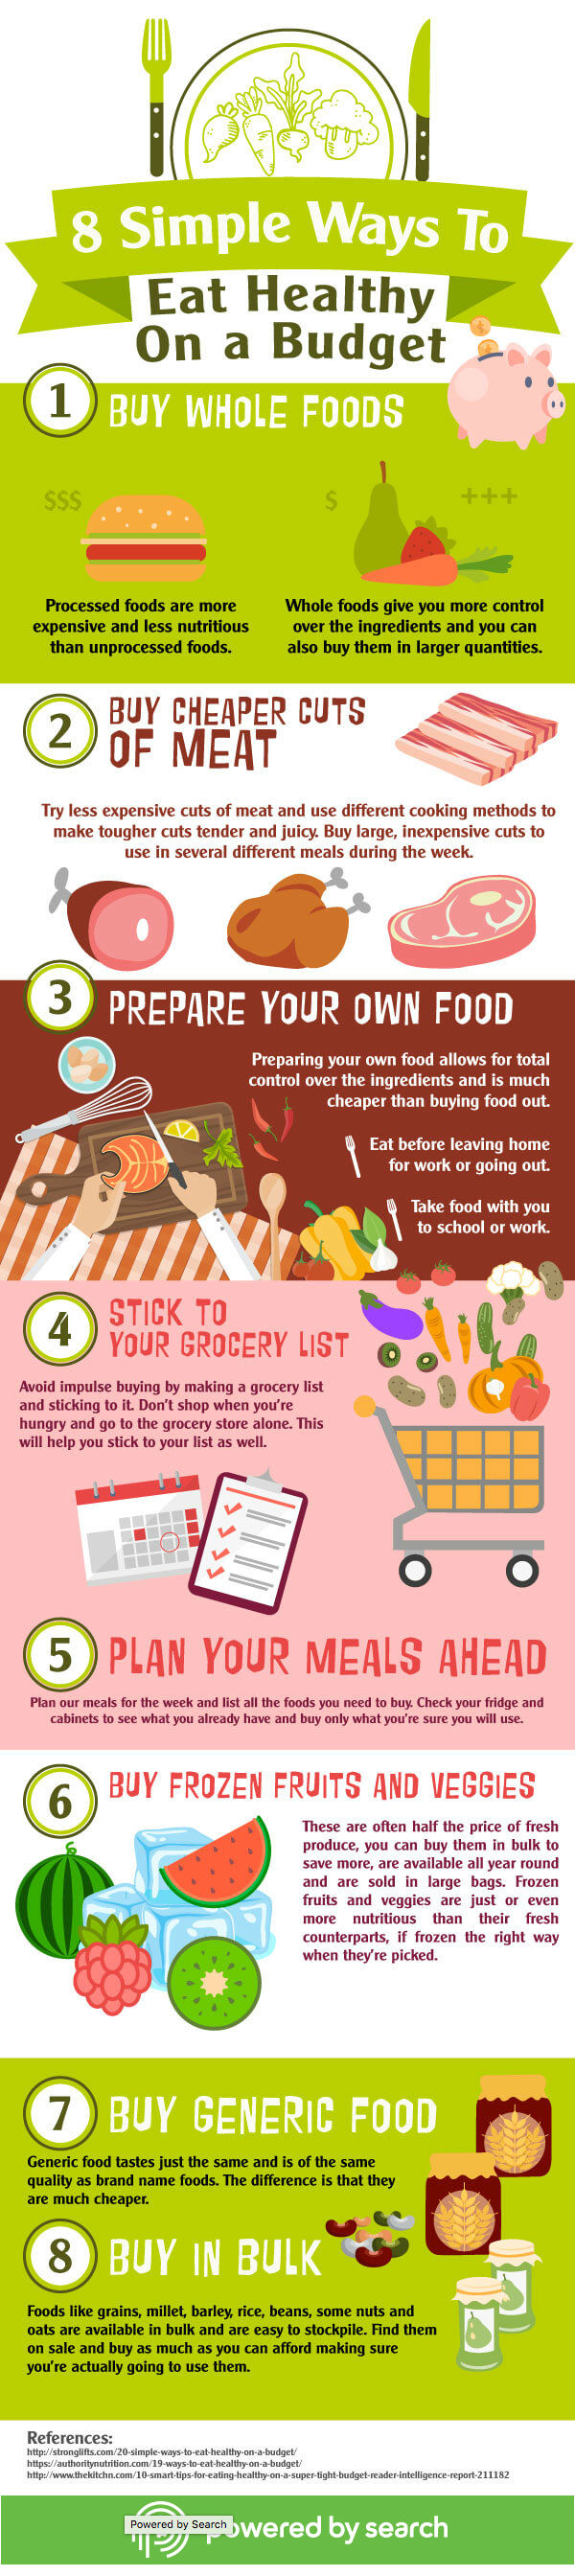 8 Simple Ways to Eat Healthy on a Budget (PbS)